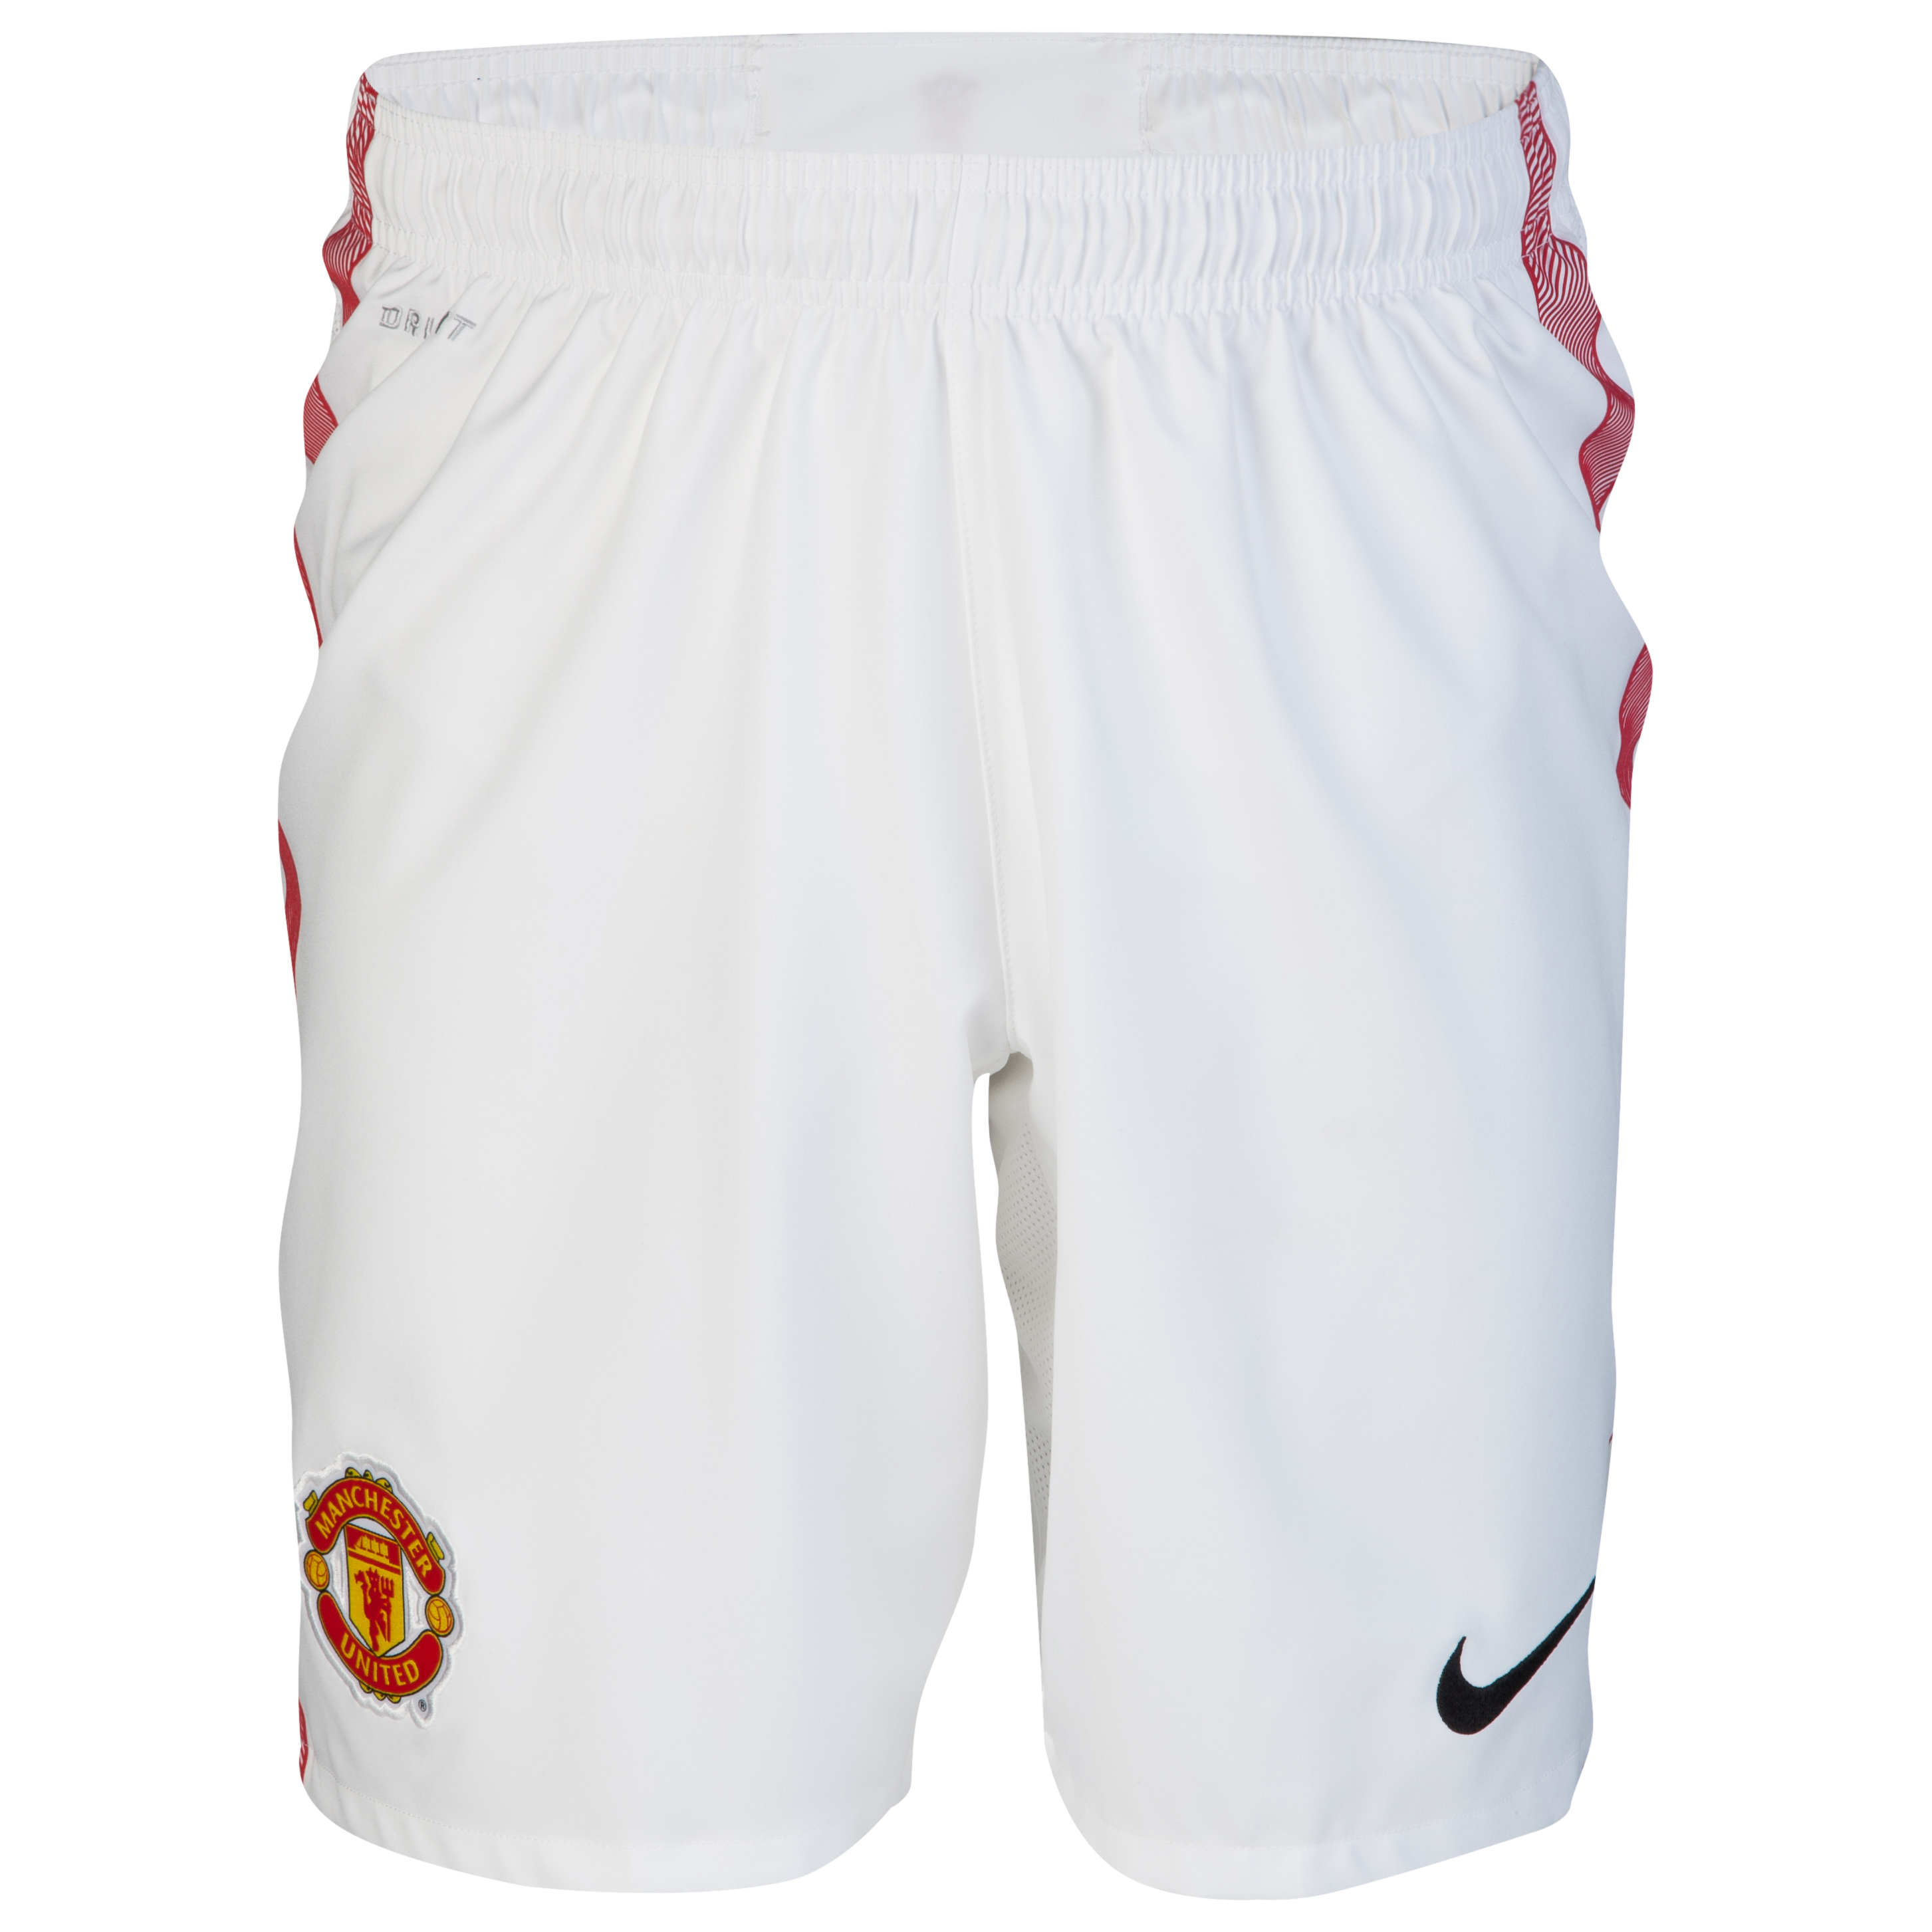 Manchester United Home Shorts 2012/13 - Youths